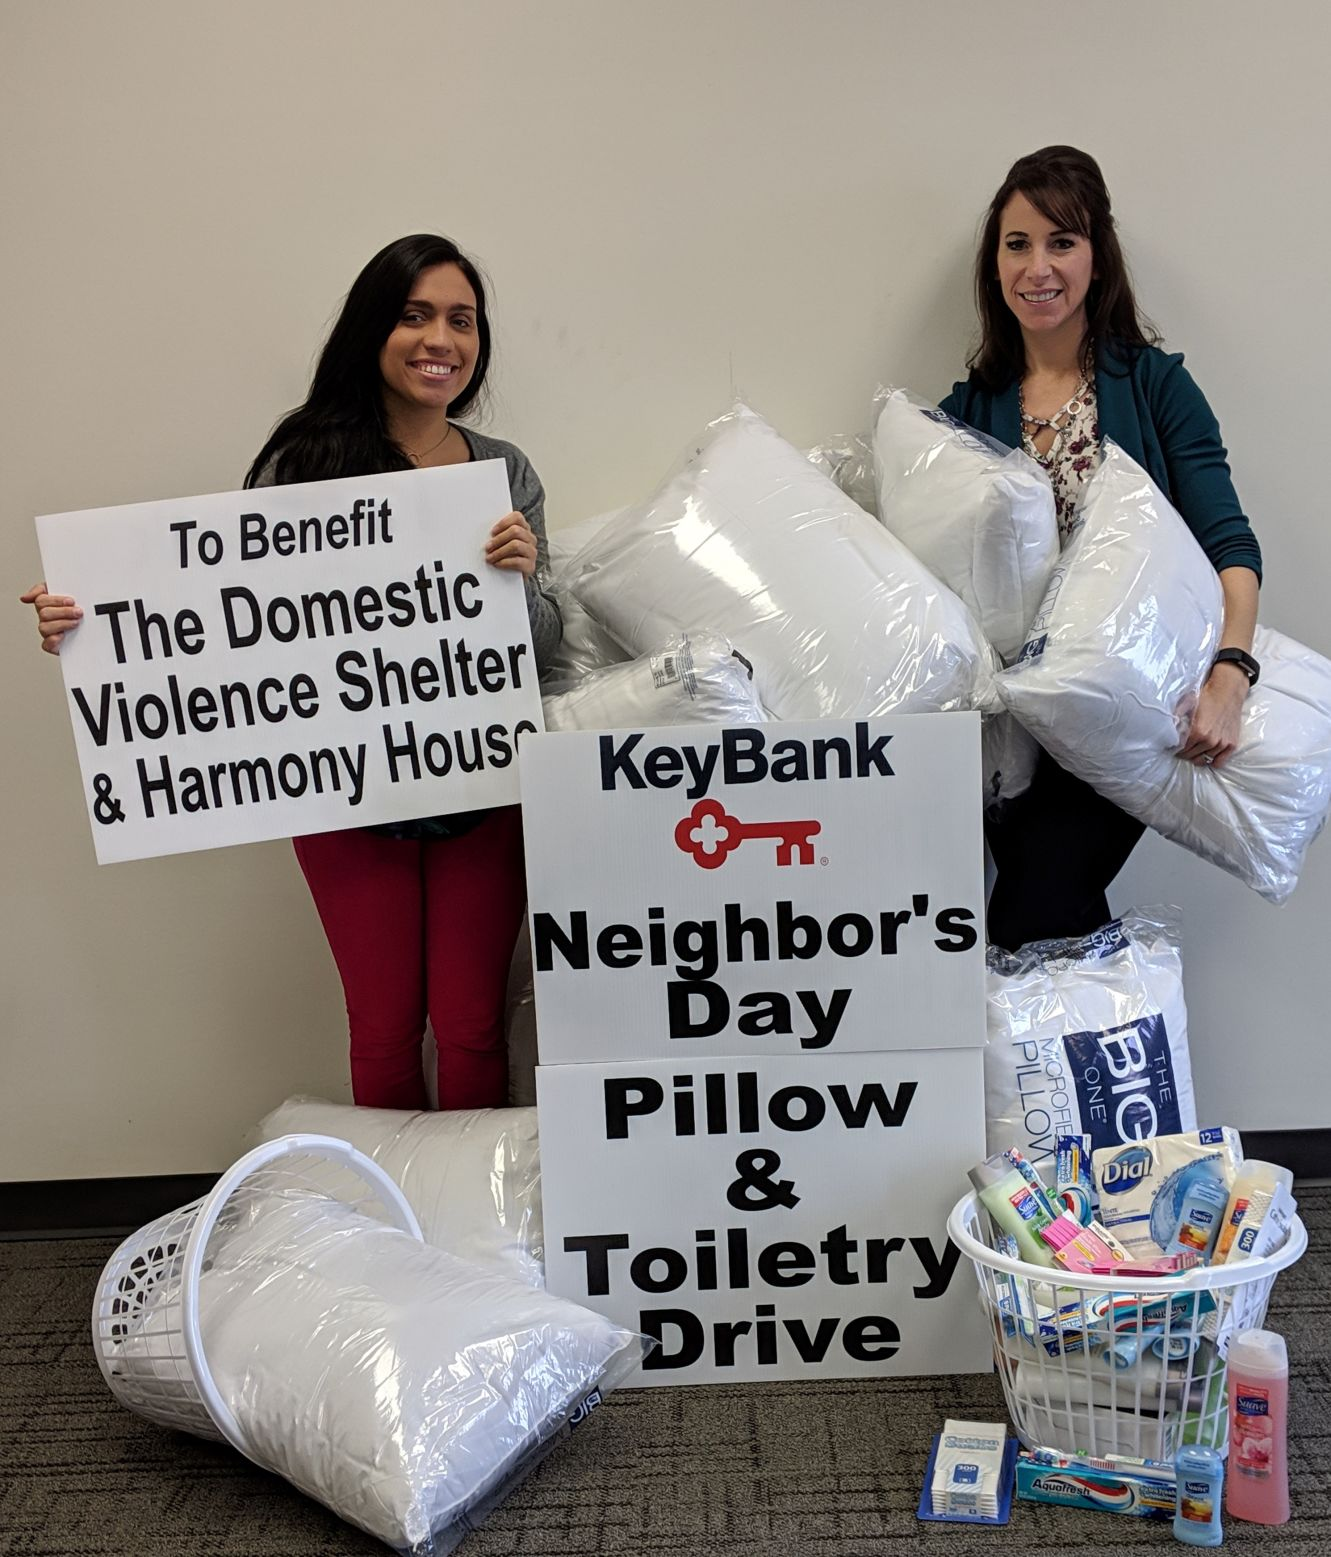 KeyBank hosts pillow & toiletry drive on May 15